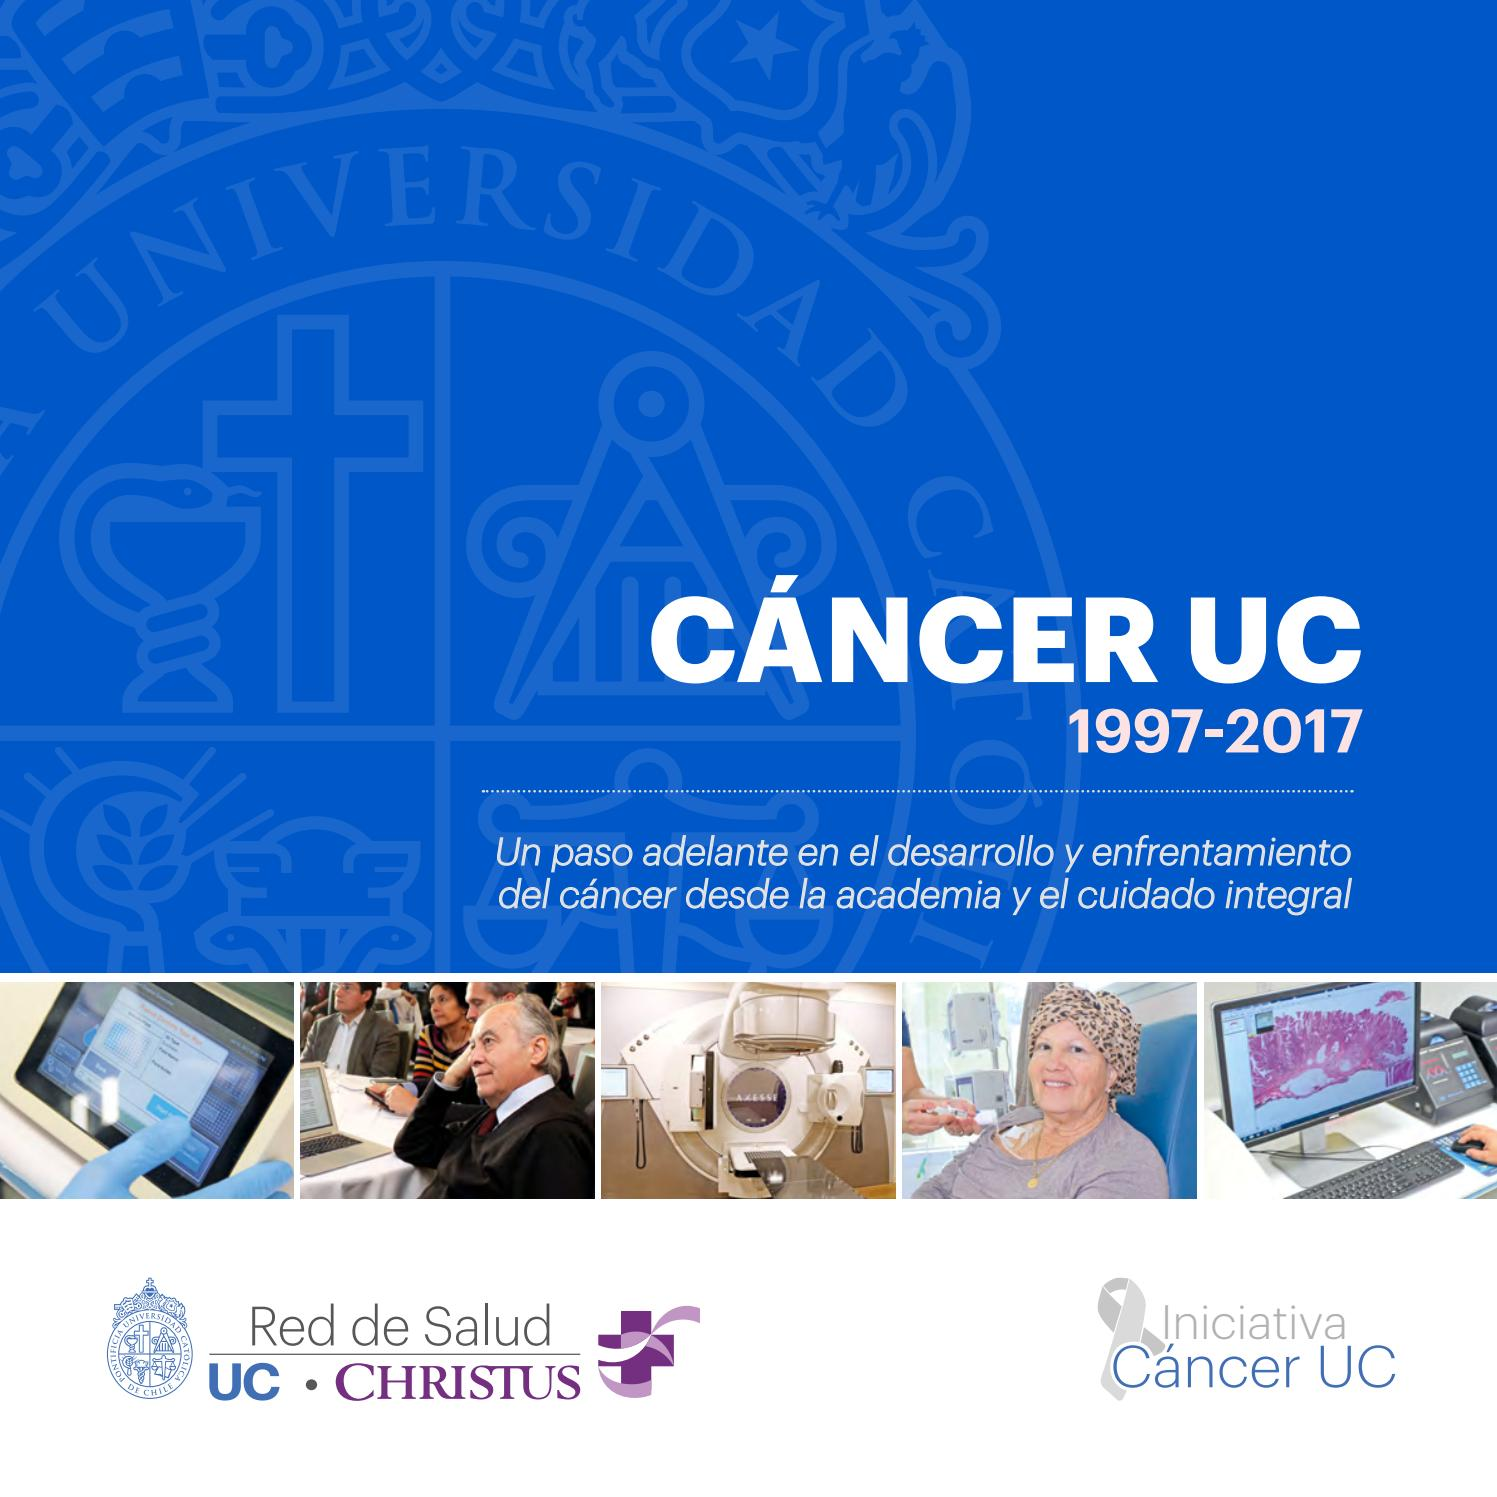 cancer de prostata uc hpv types associated with malignant disease